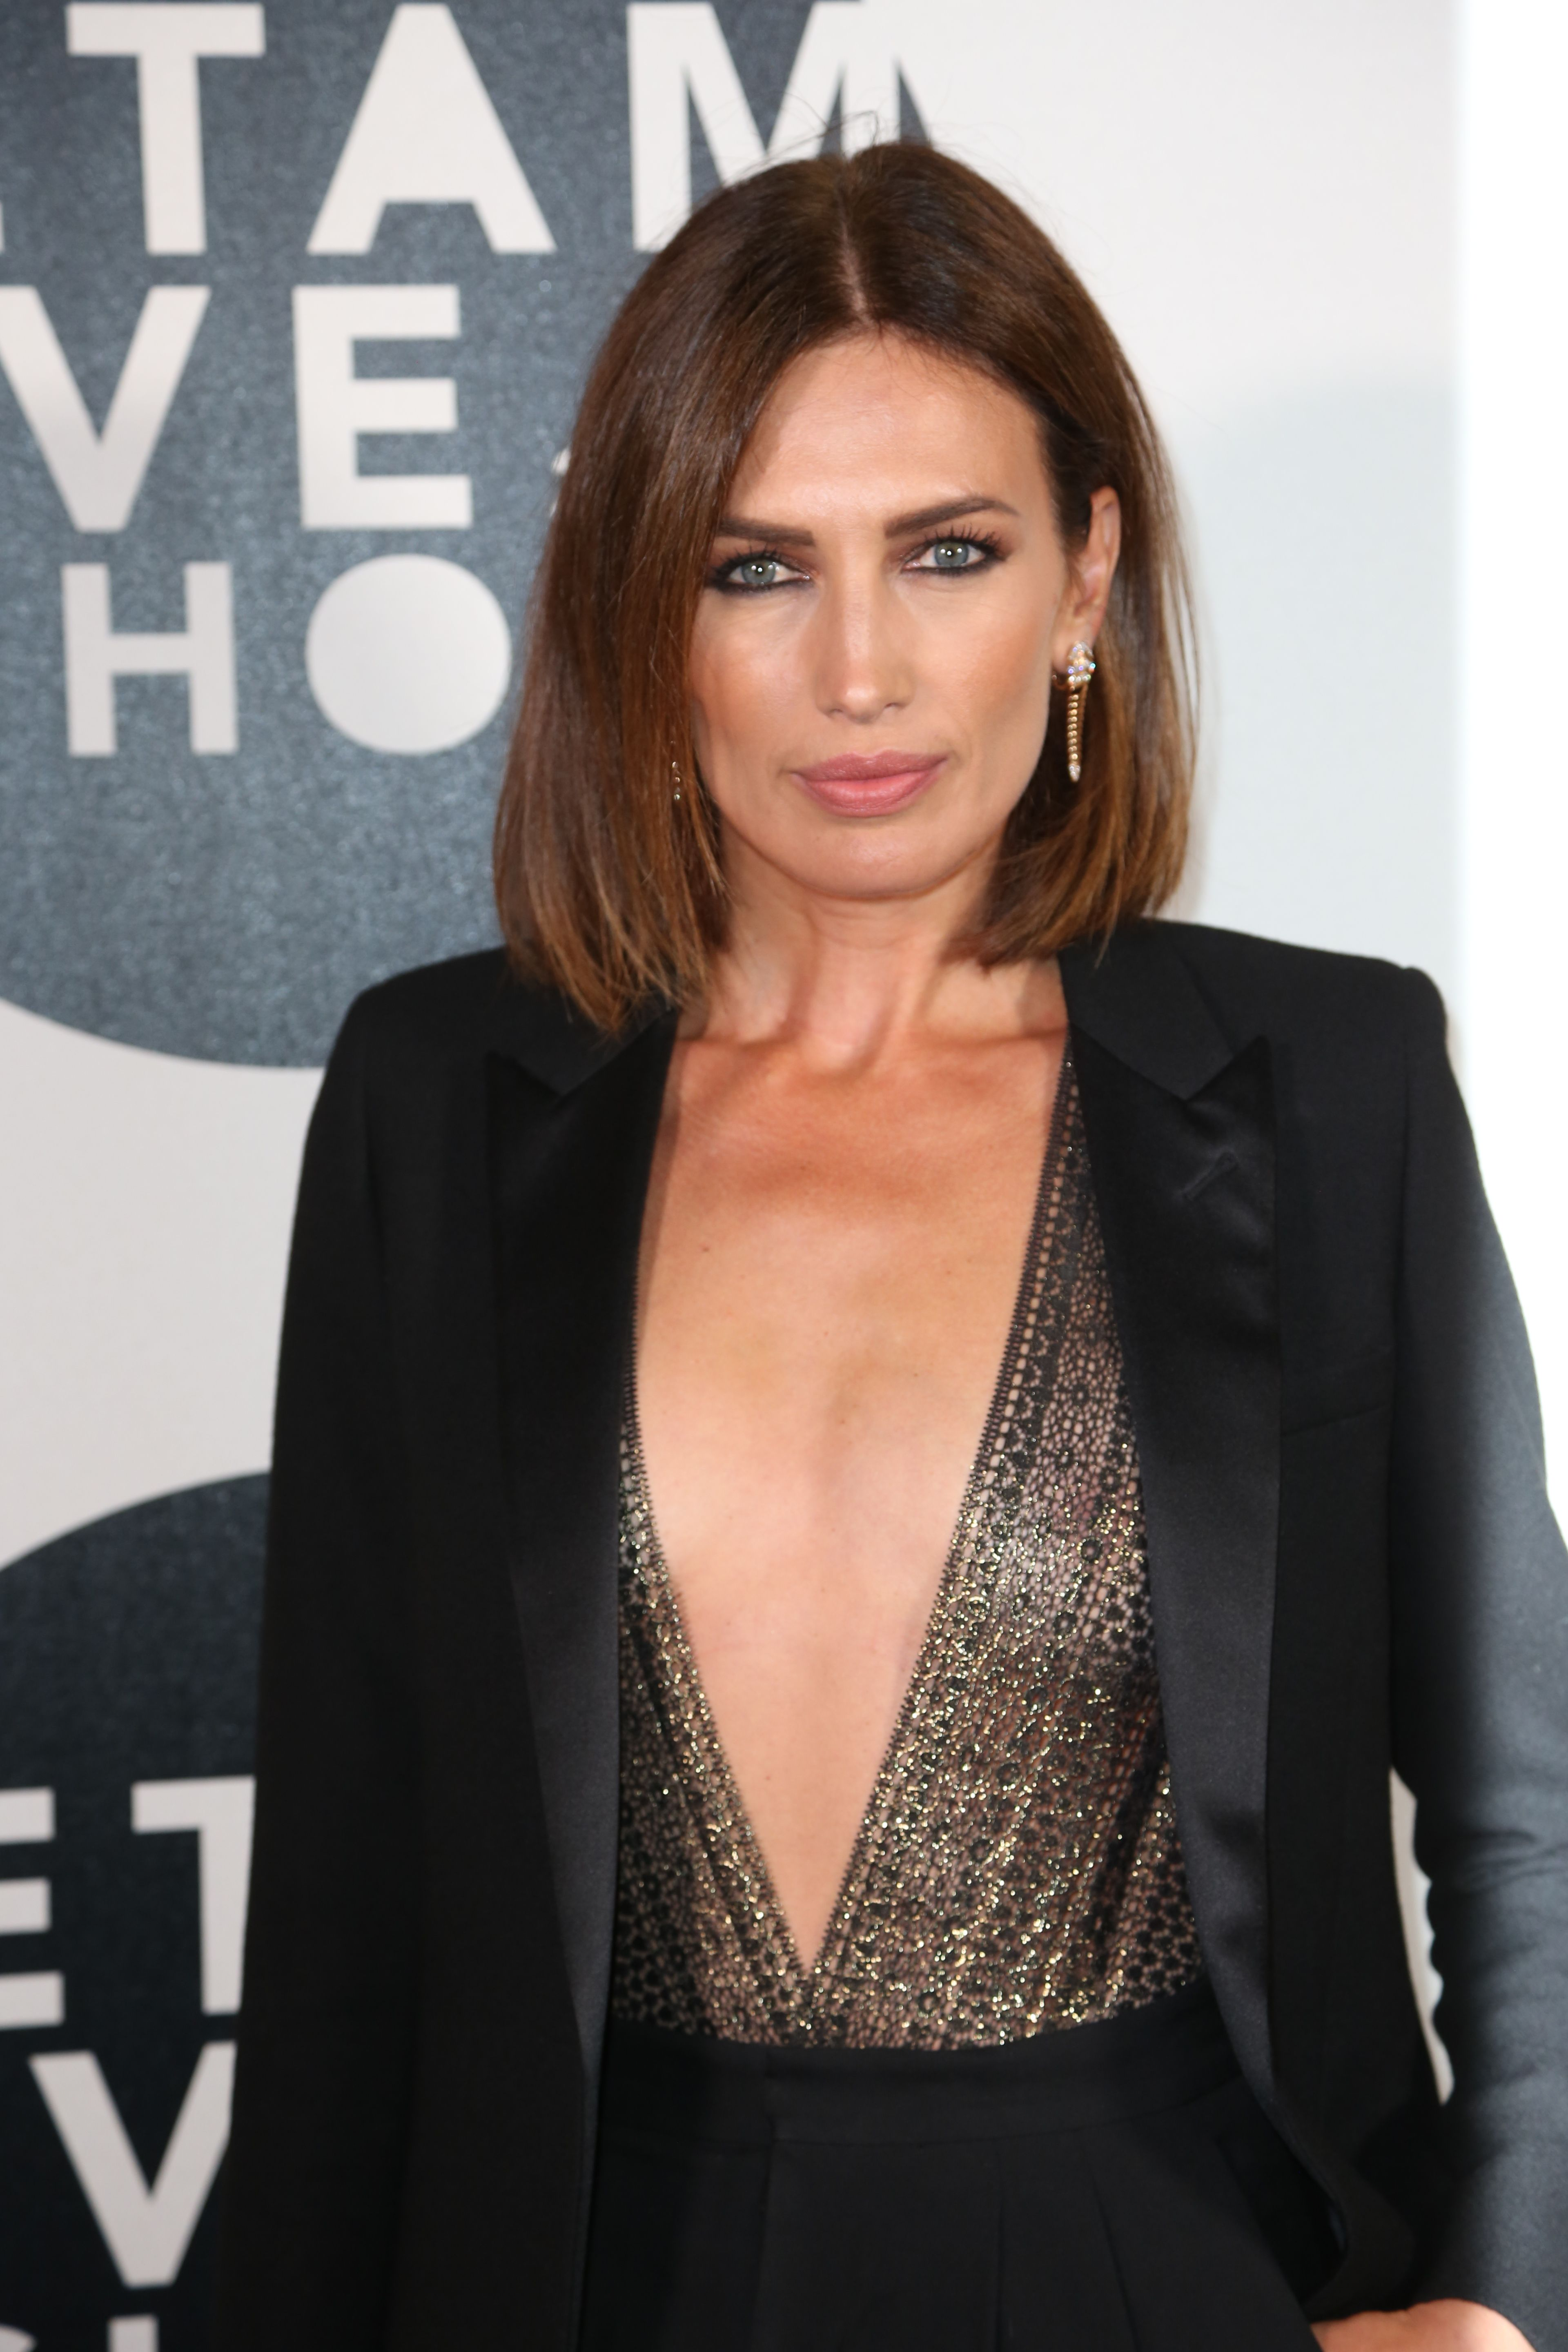 Nude Nieves Alvarez naked (12 photo), Ass, Fappening, Instagram, cleavage 2018